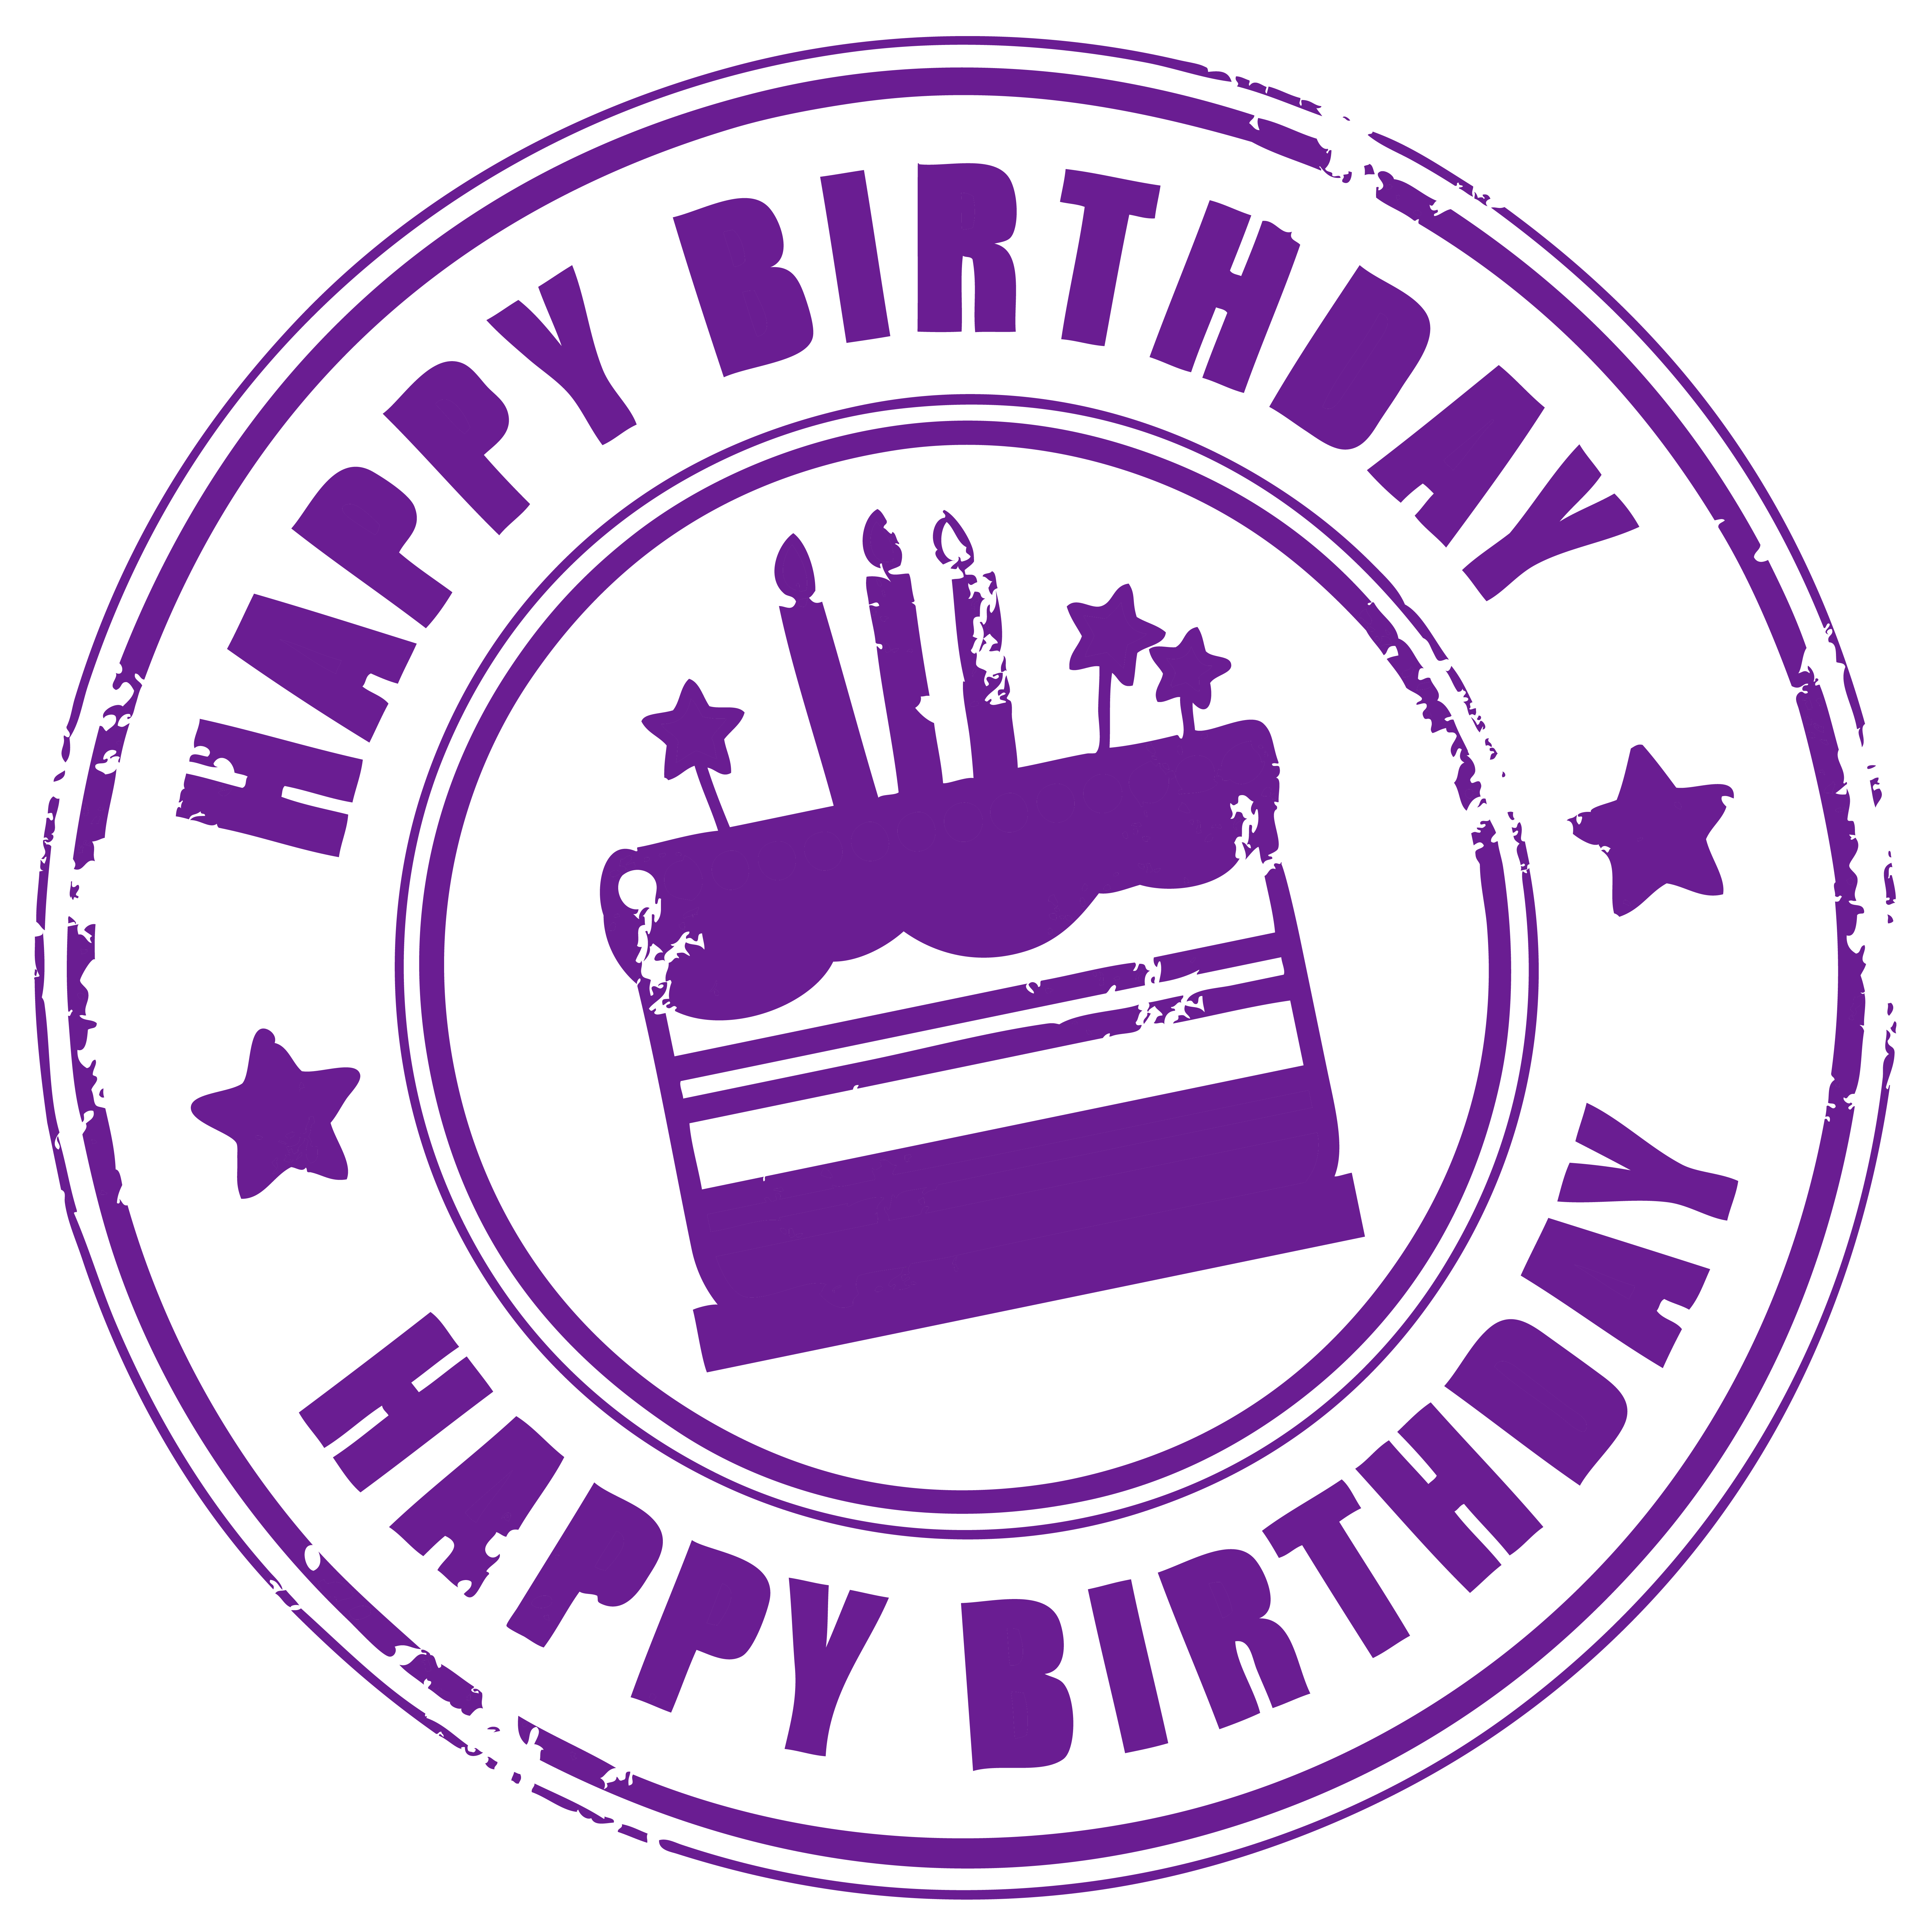 Circle clipart happy birthday. Stamp png picture gallery